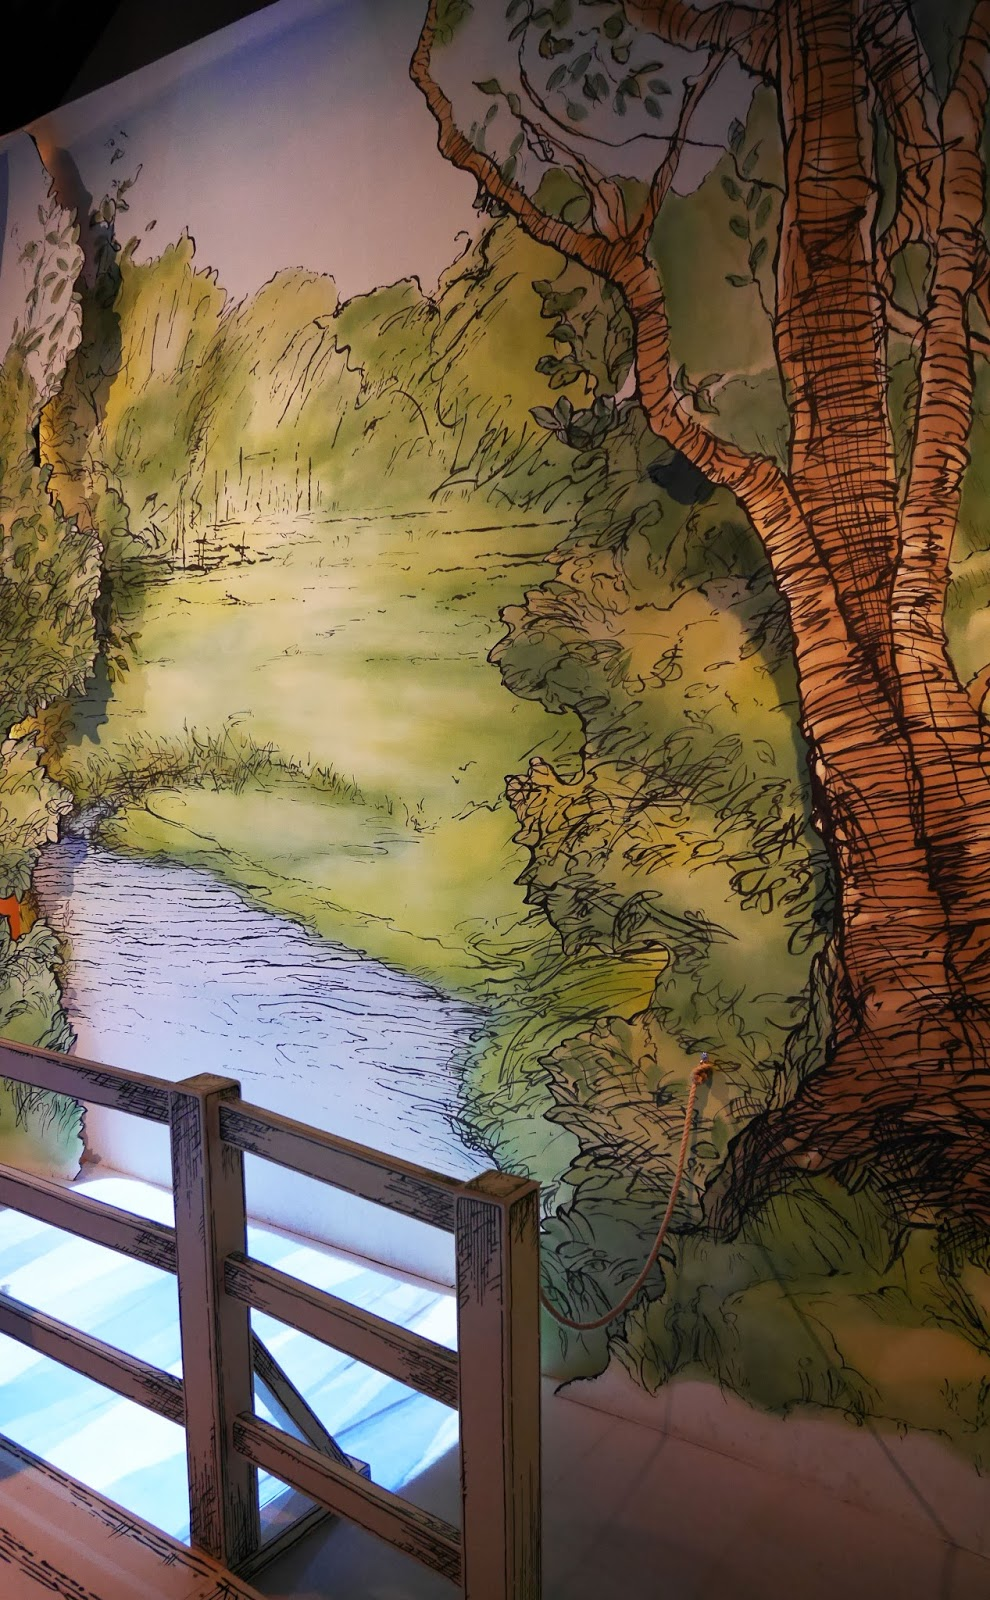 Installations and artwork at the Winnie the Pooh: Exploring a Classic exhibition, London